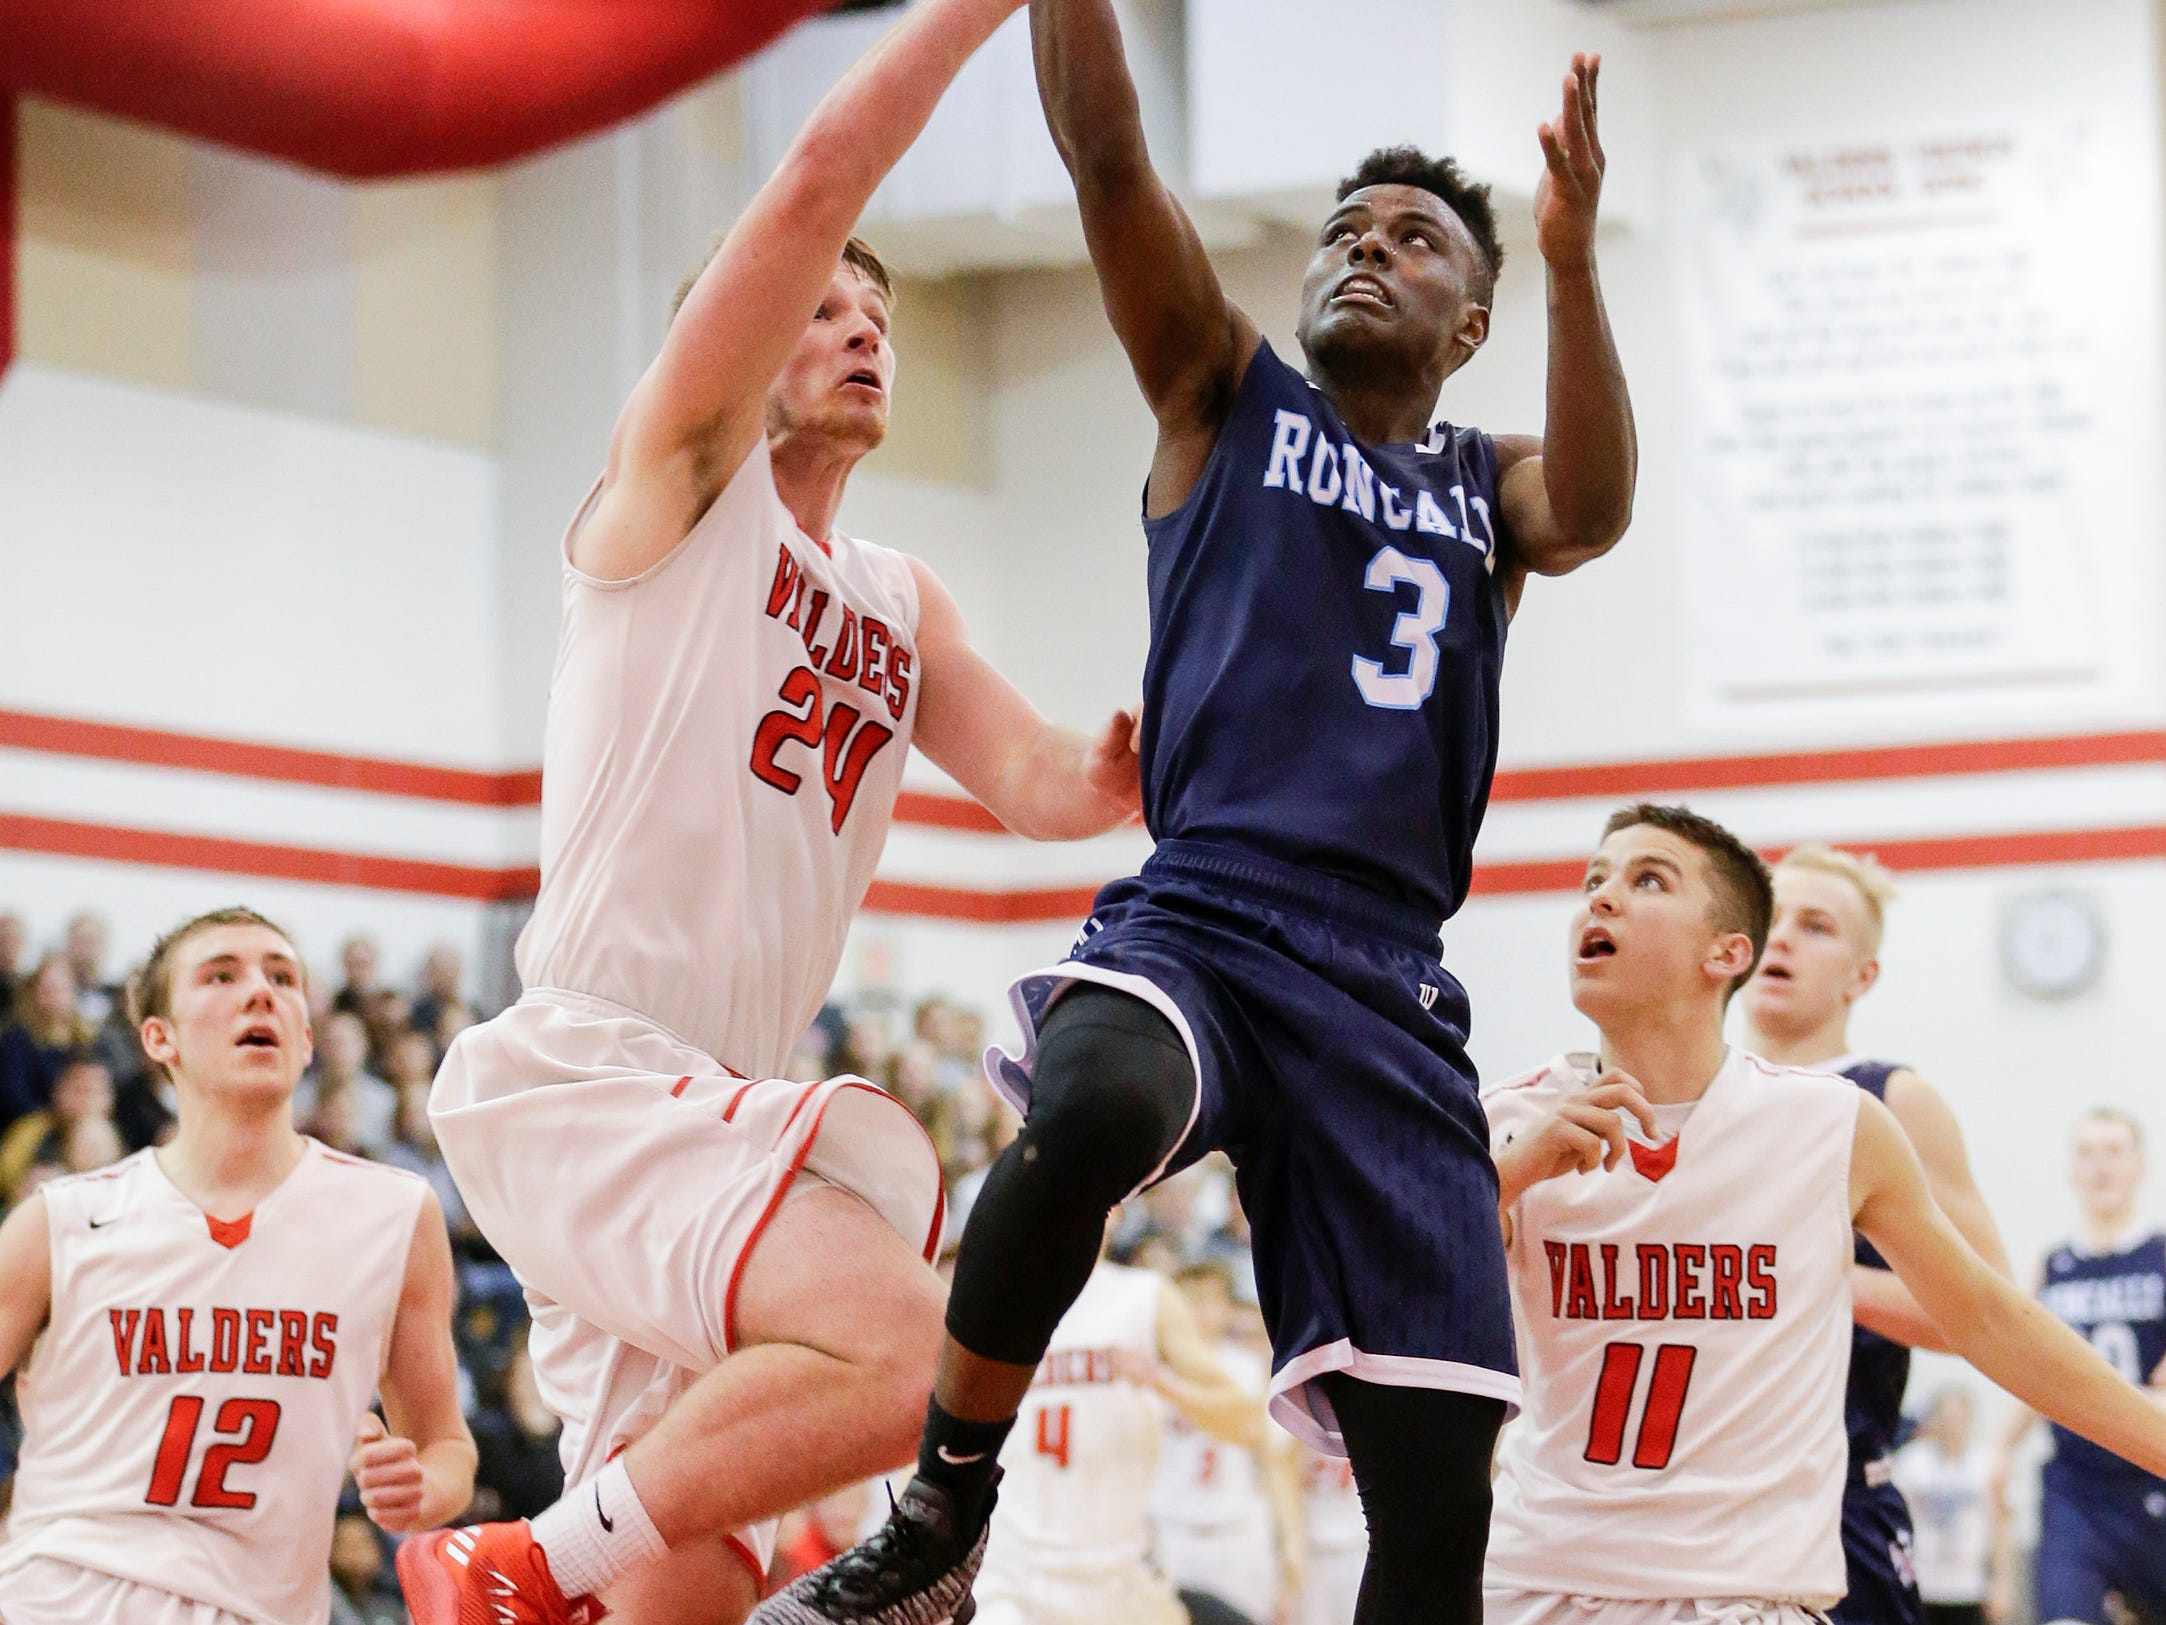 Roncalli's Chombi Lambert is fouled by Valders' Fletcher Dallas as he drives to the hoop during an Eastern Wisconsin Conference game at Valders High School Thursday, January 3, 2019, in Valders, Wis. Joshua Clark/USA TODAY NETWORK-Wisconsin